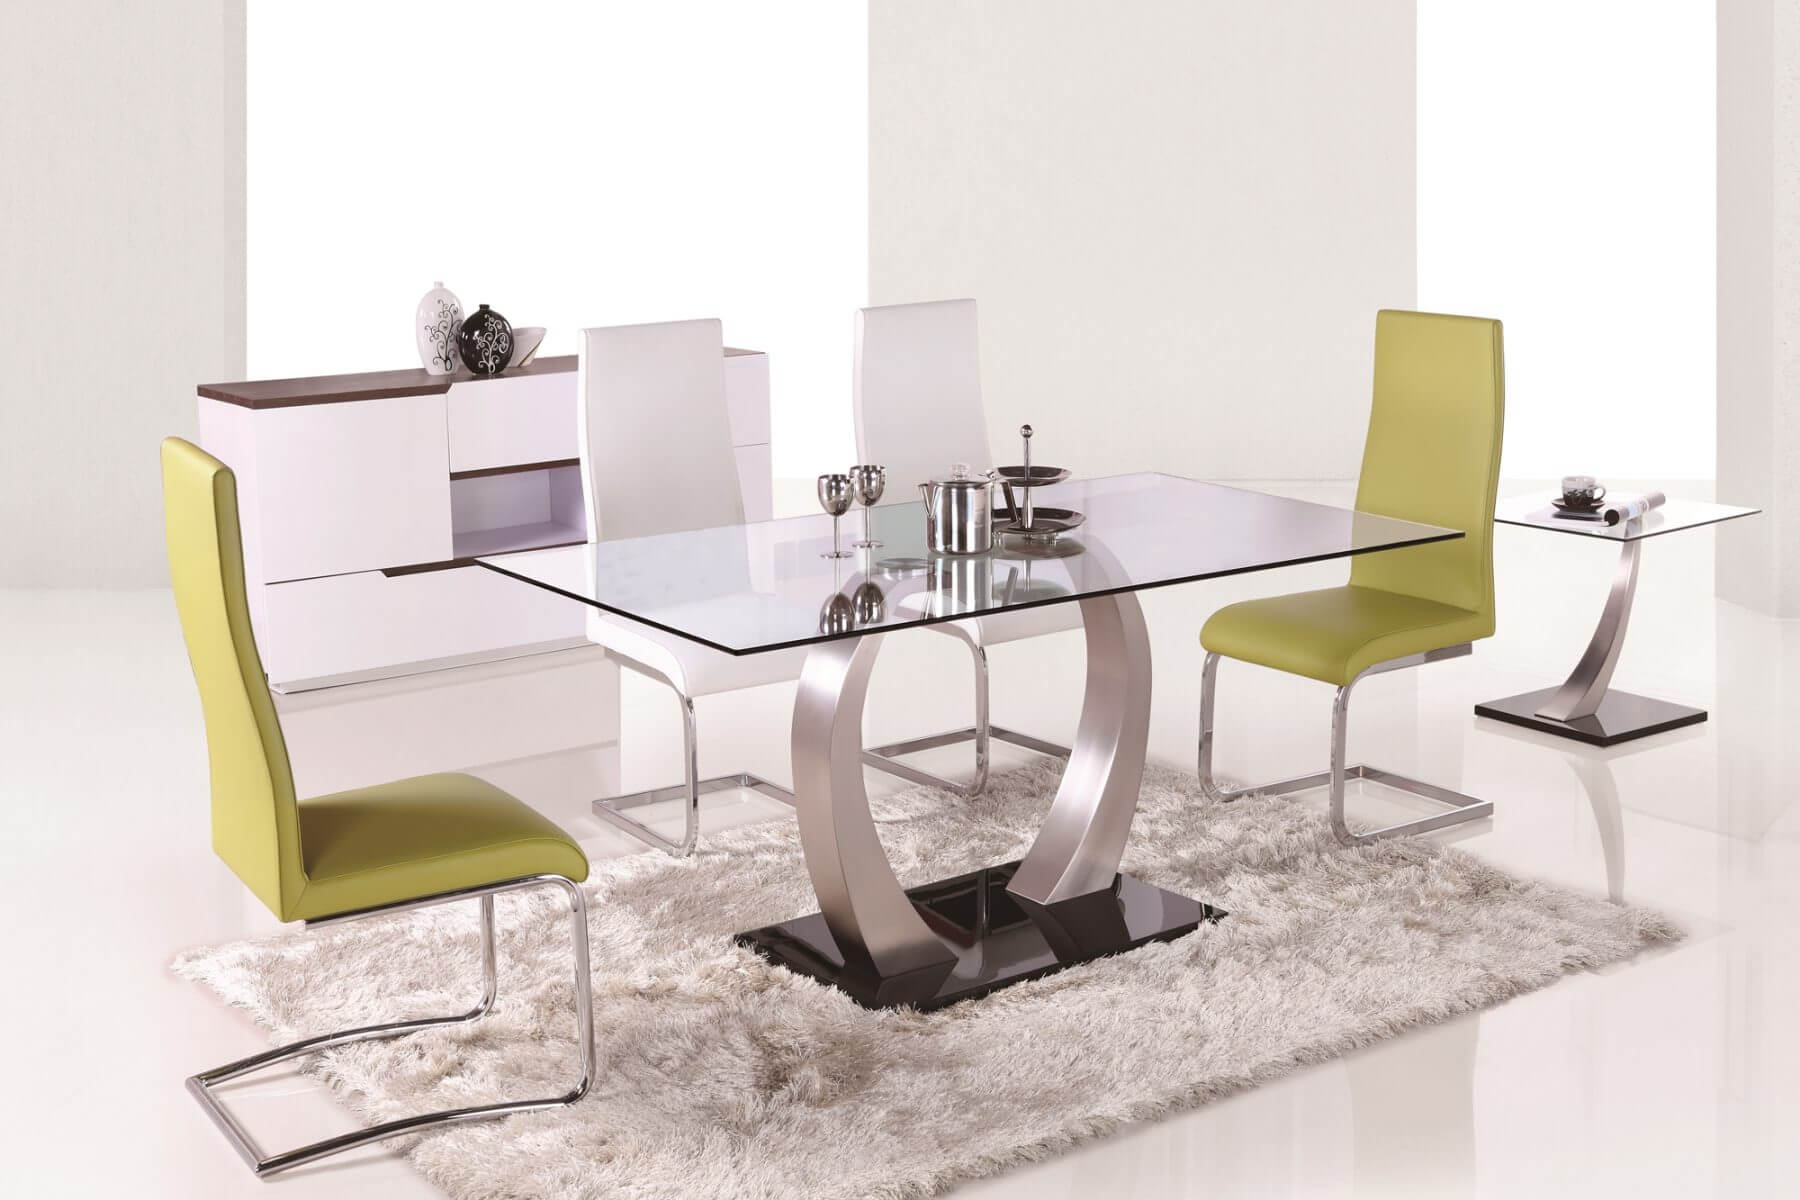 Aspire Dining Table Tempered Glass with Brushed Steel Base 6